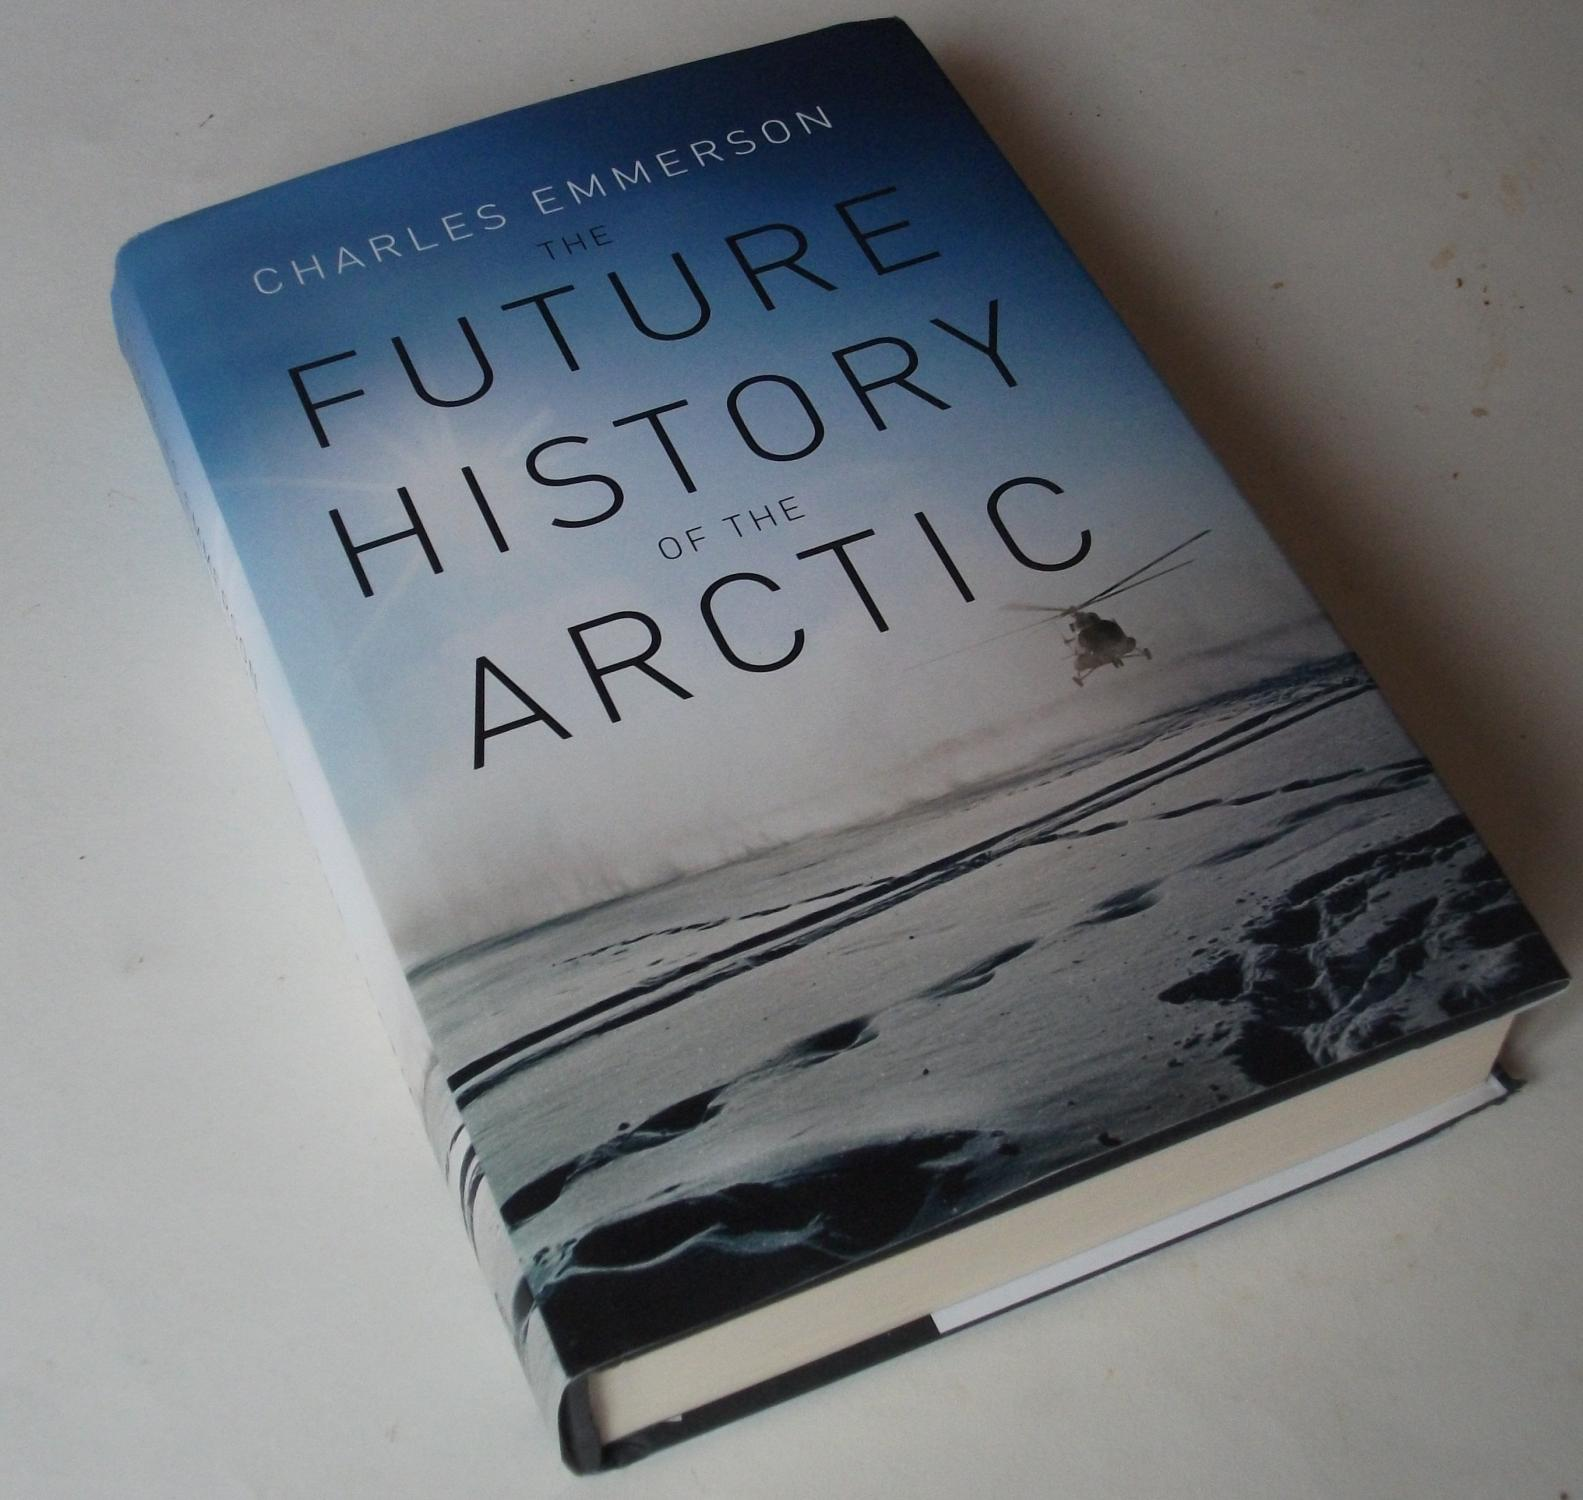 The Future History of the Arctic - Emmerson, Charles